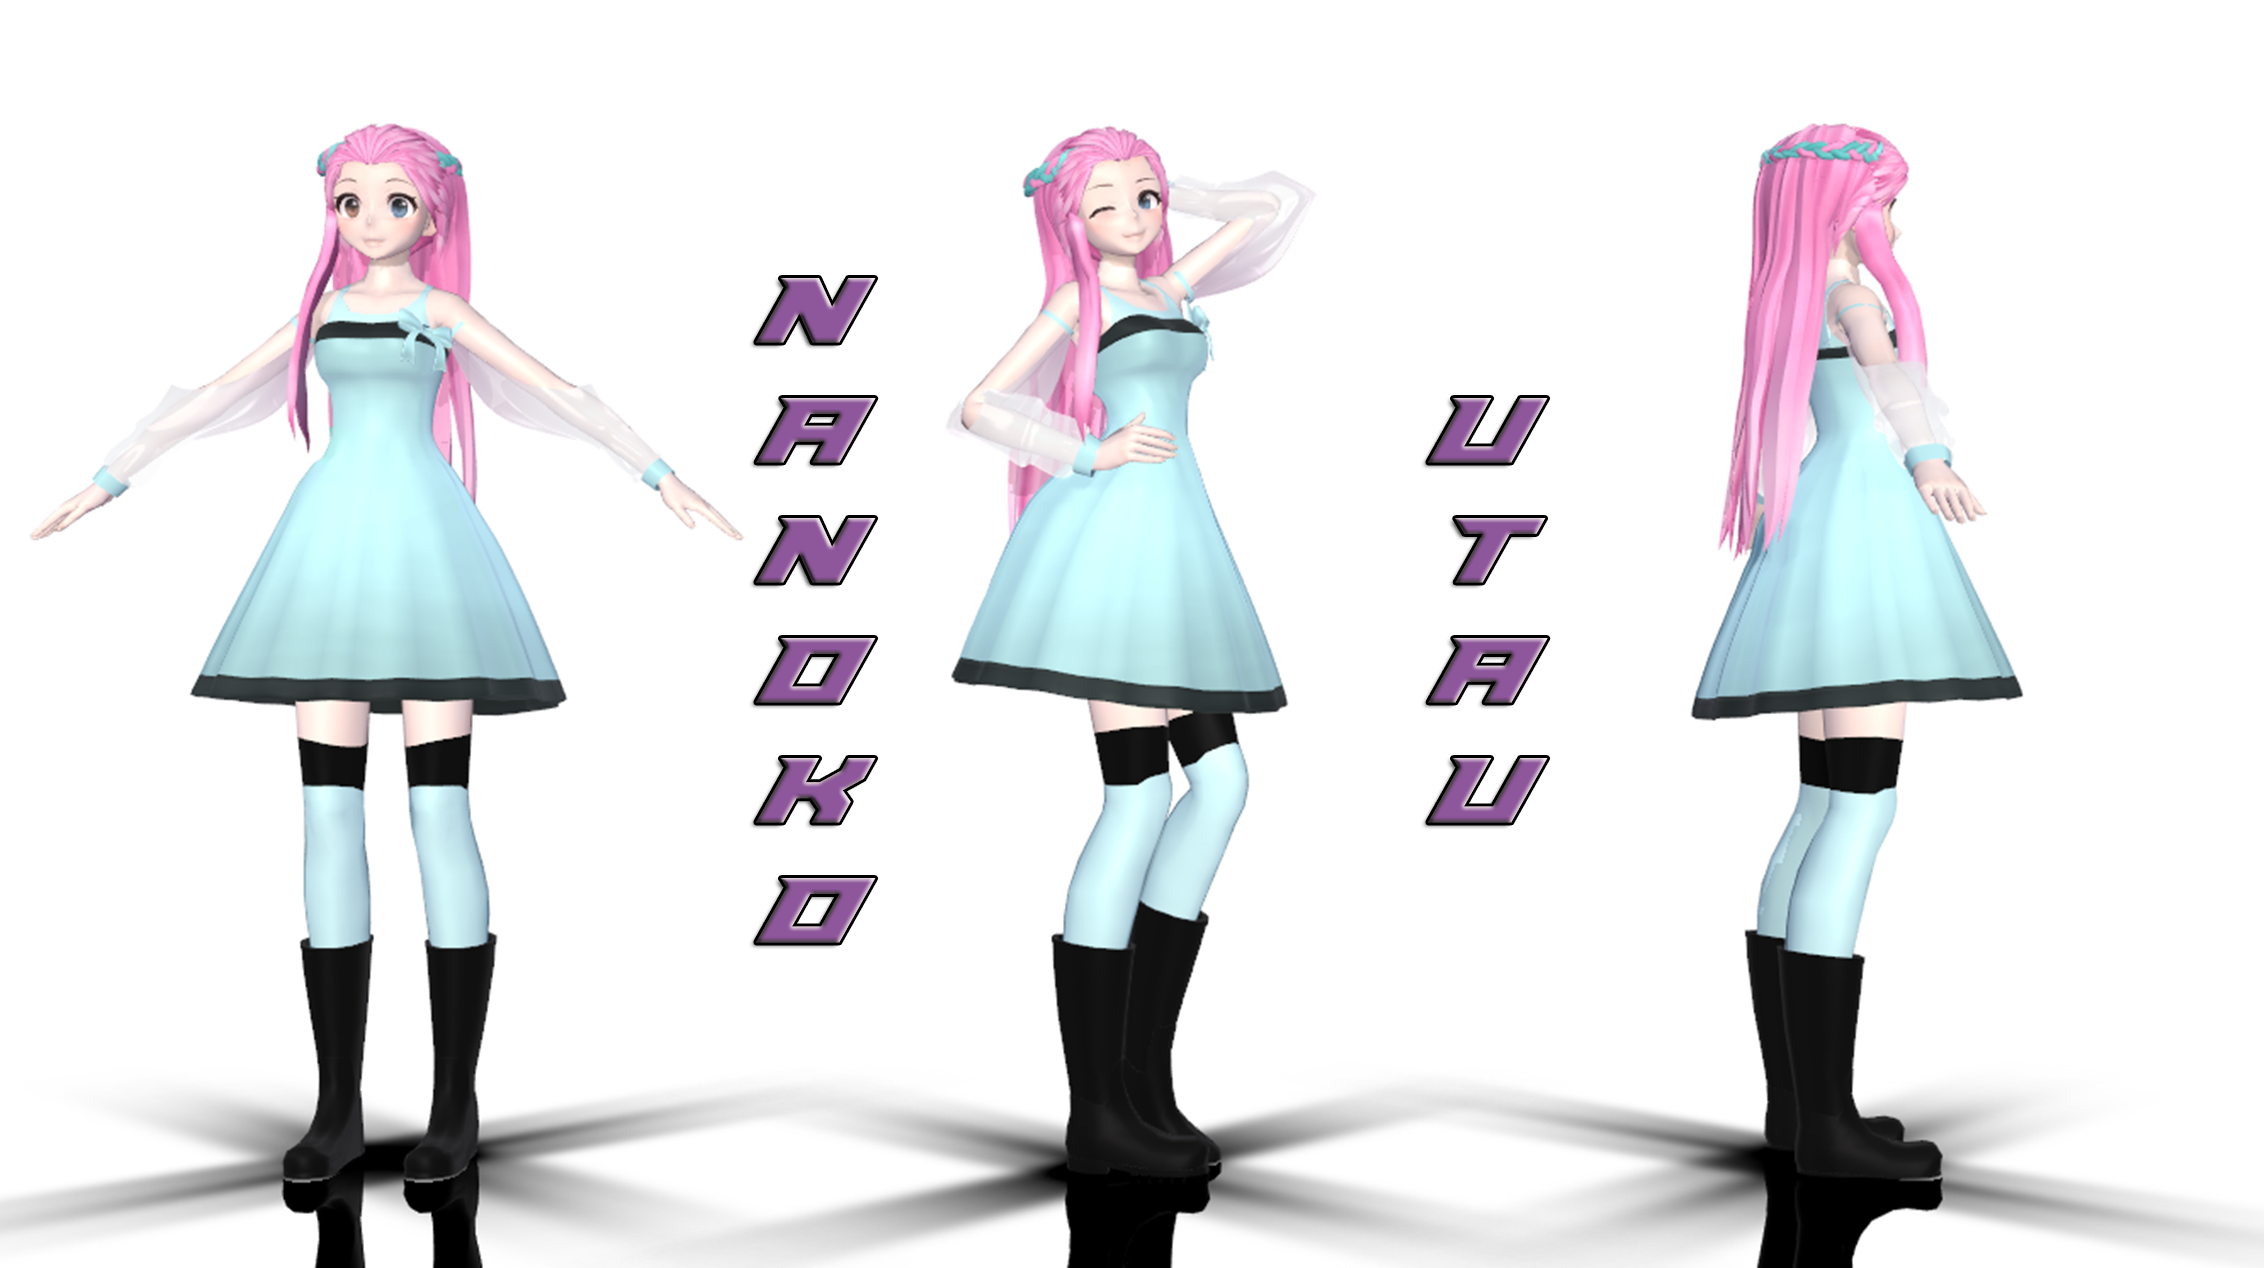 mmd - nanoko - model and utau voicebank